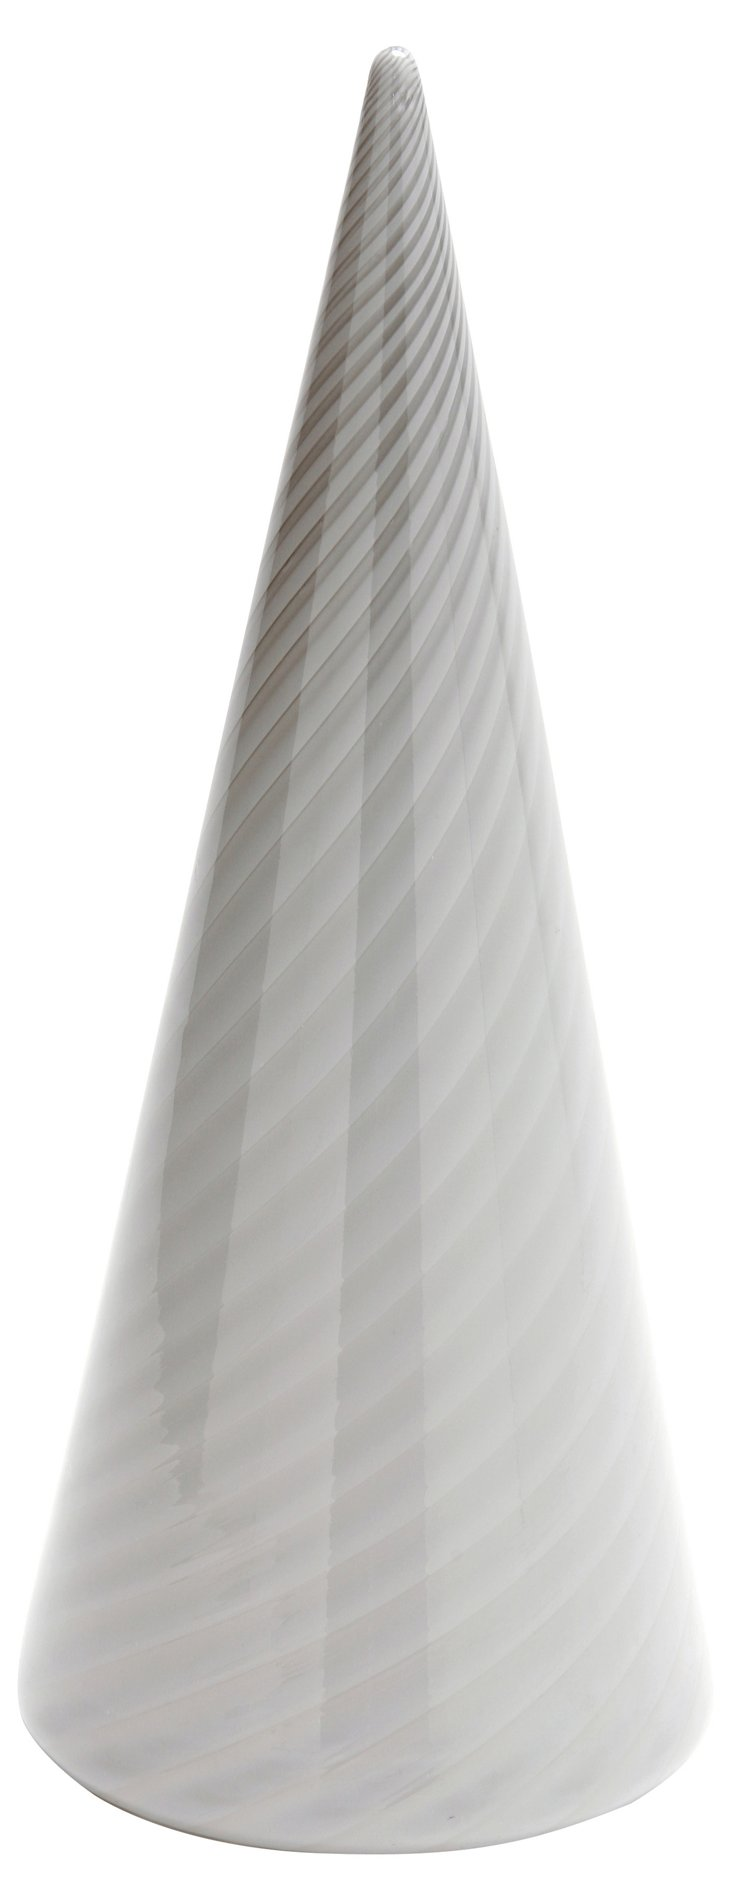 Murano Glass Cone Lamp